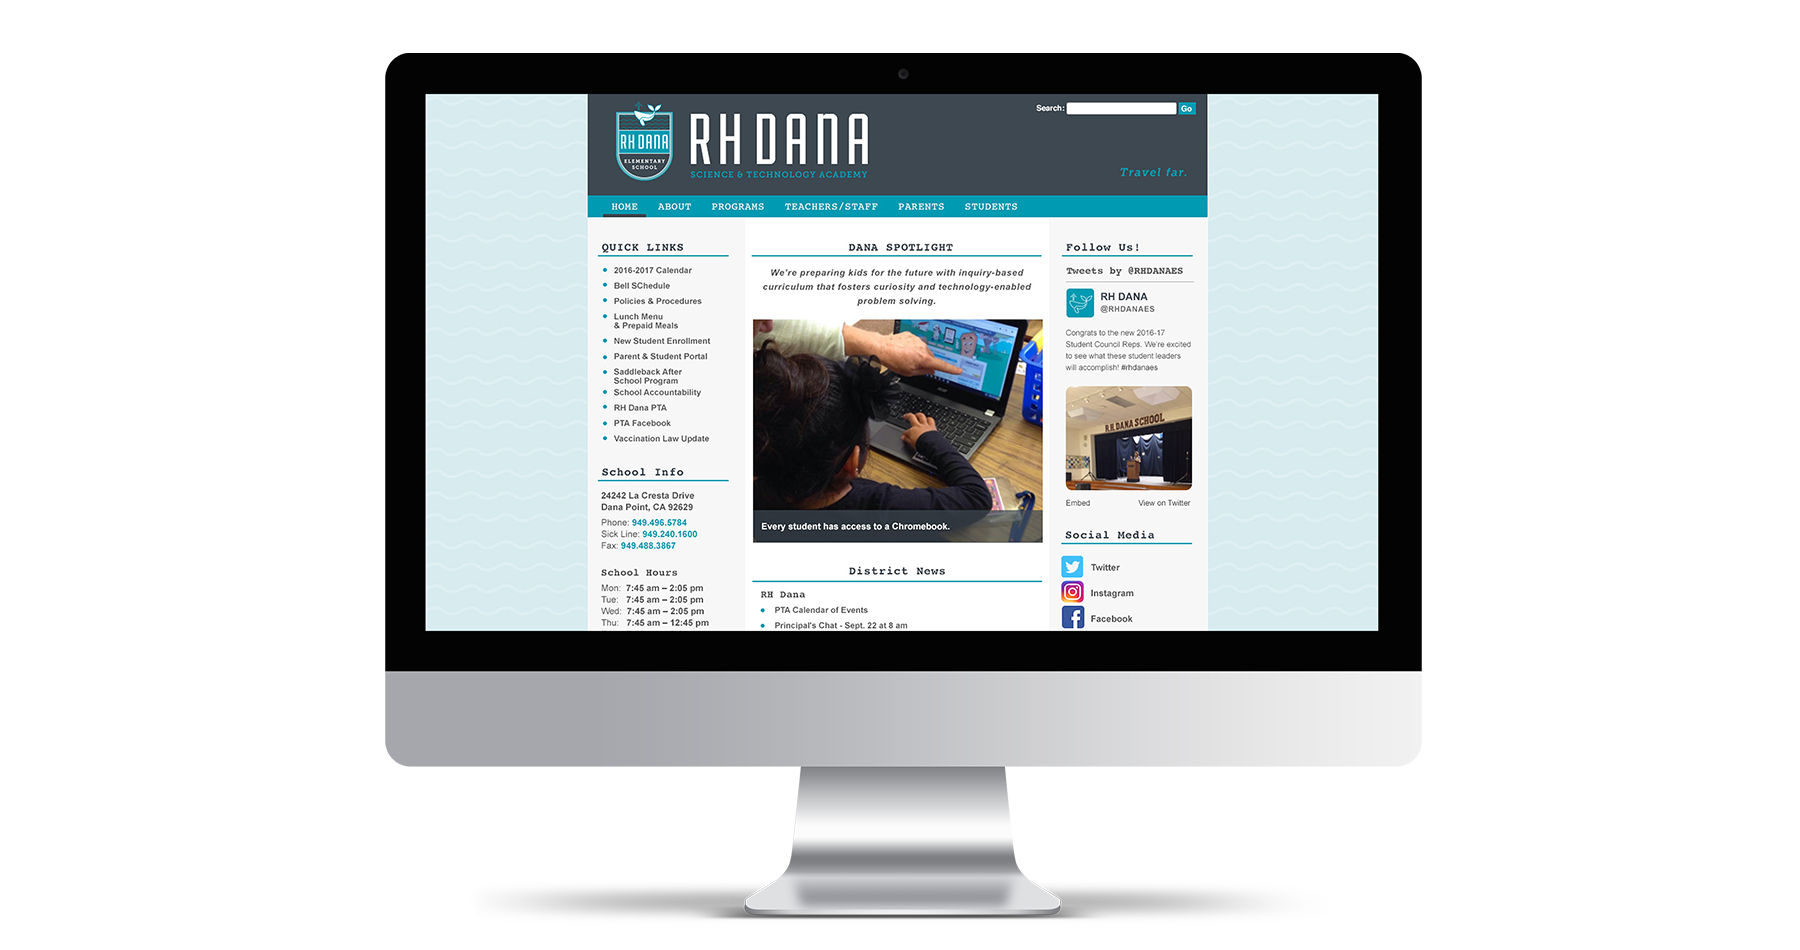 rh dana elementary school website design